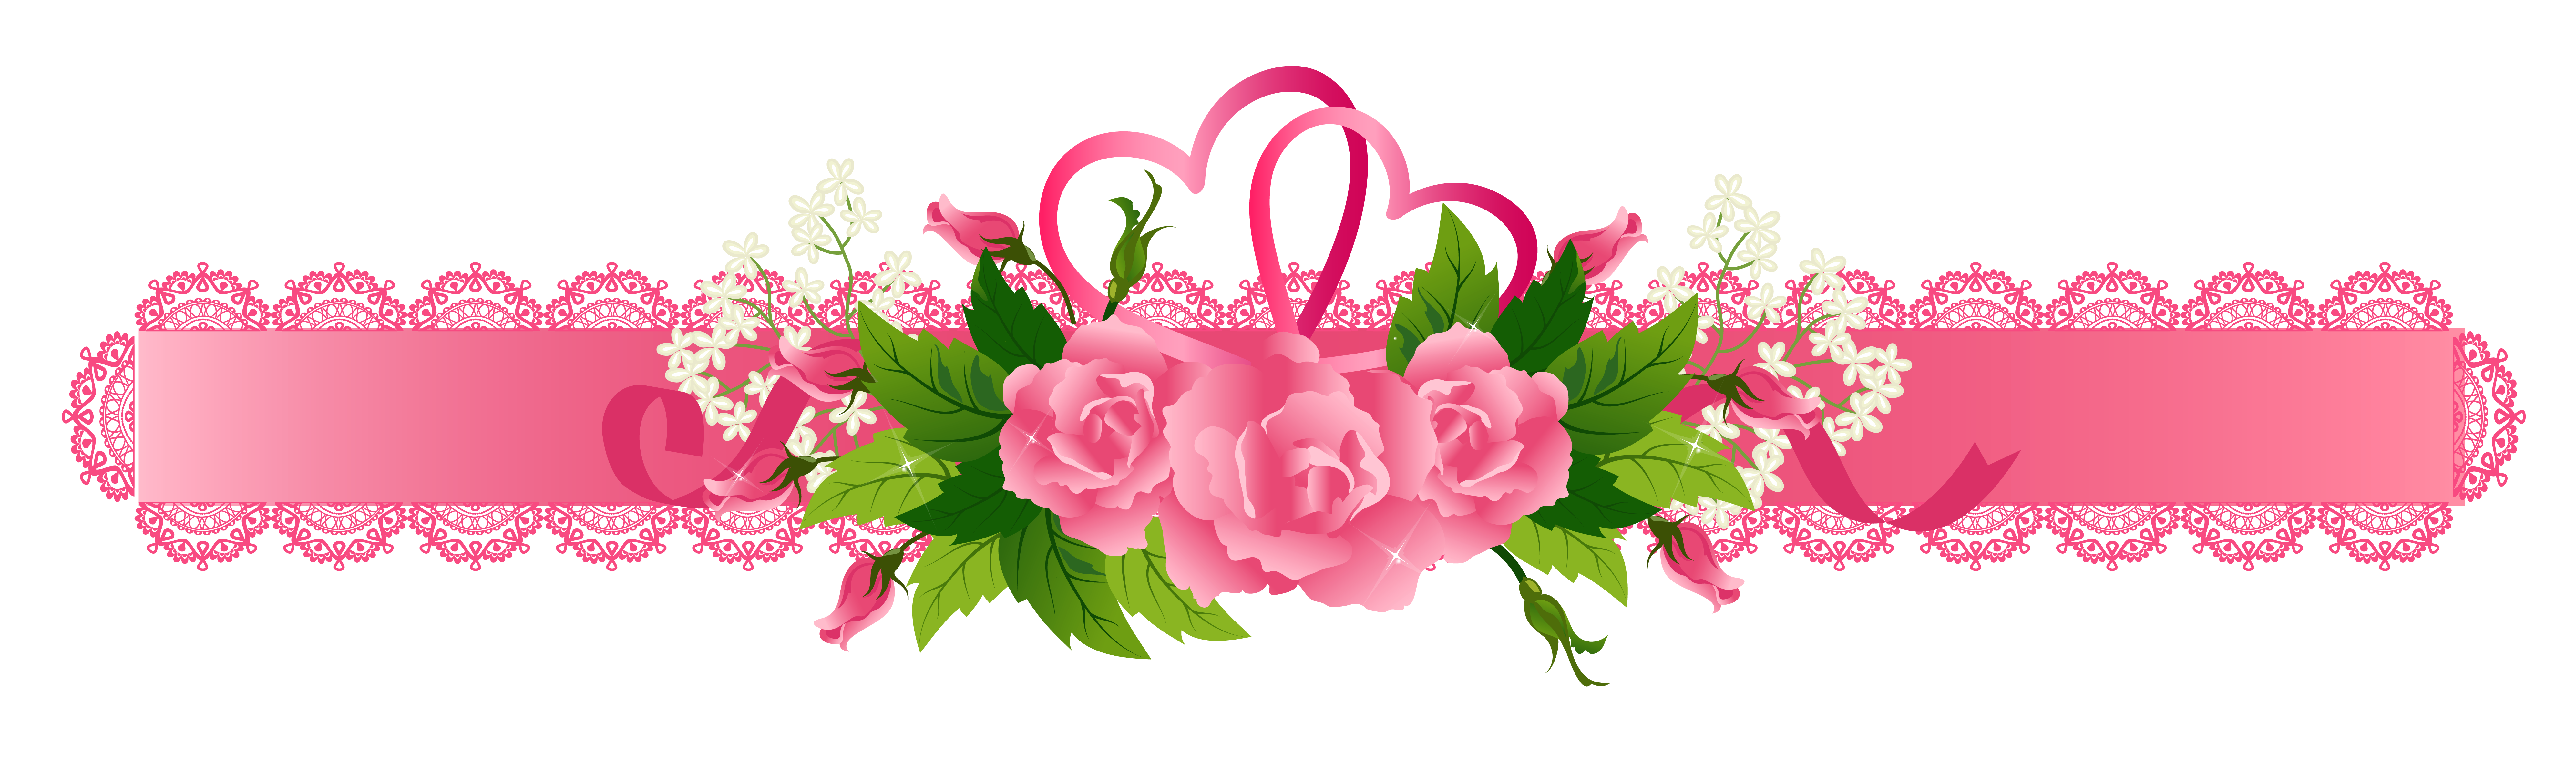 Pink Hair clipart baby bow #13